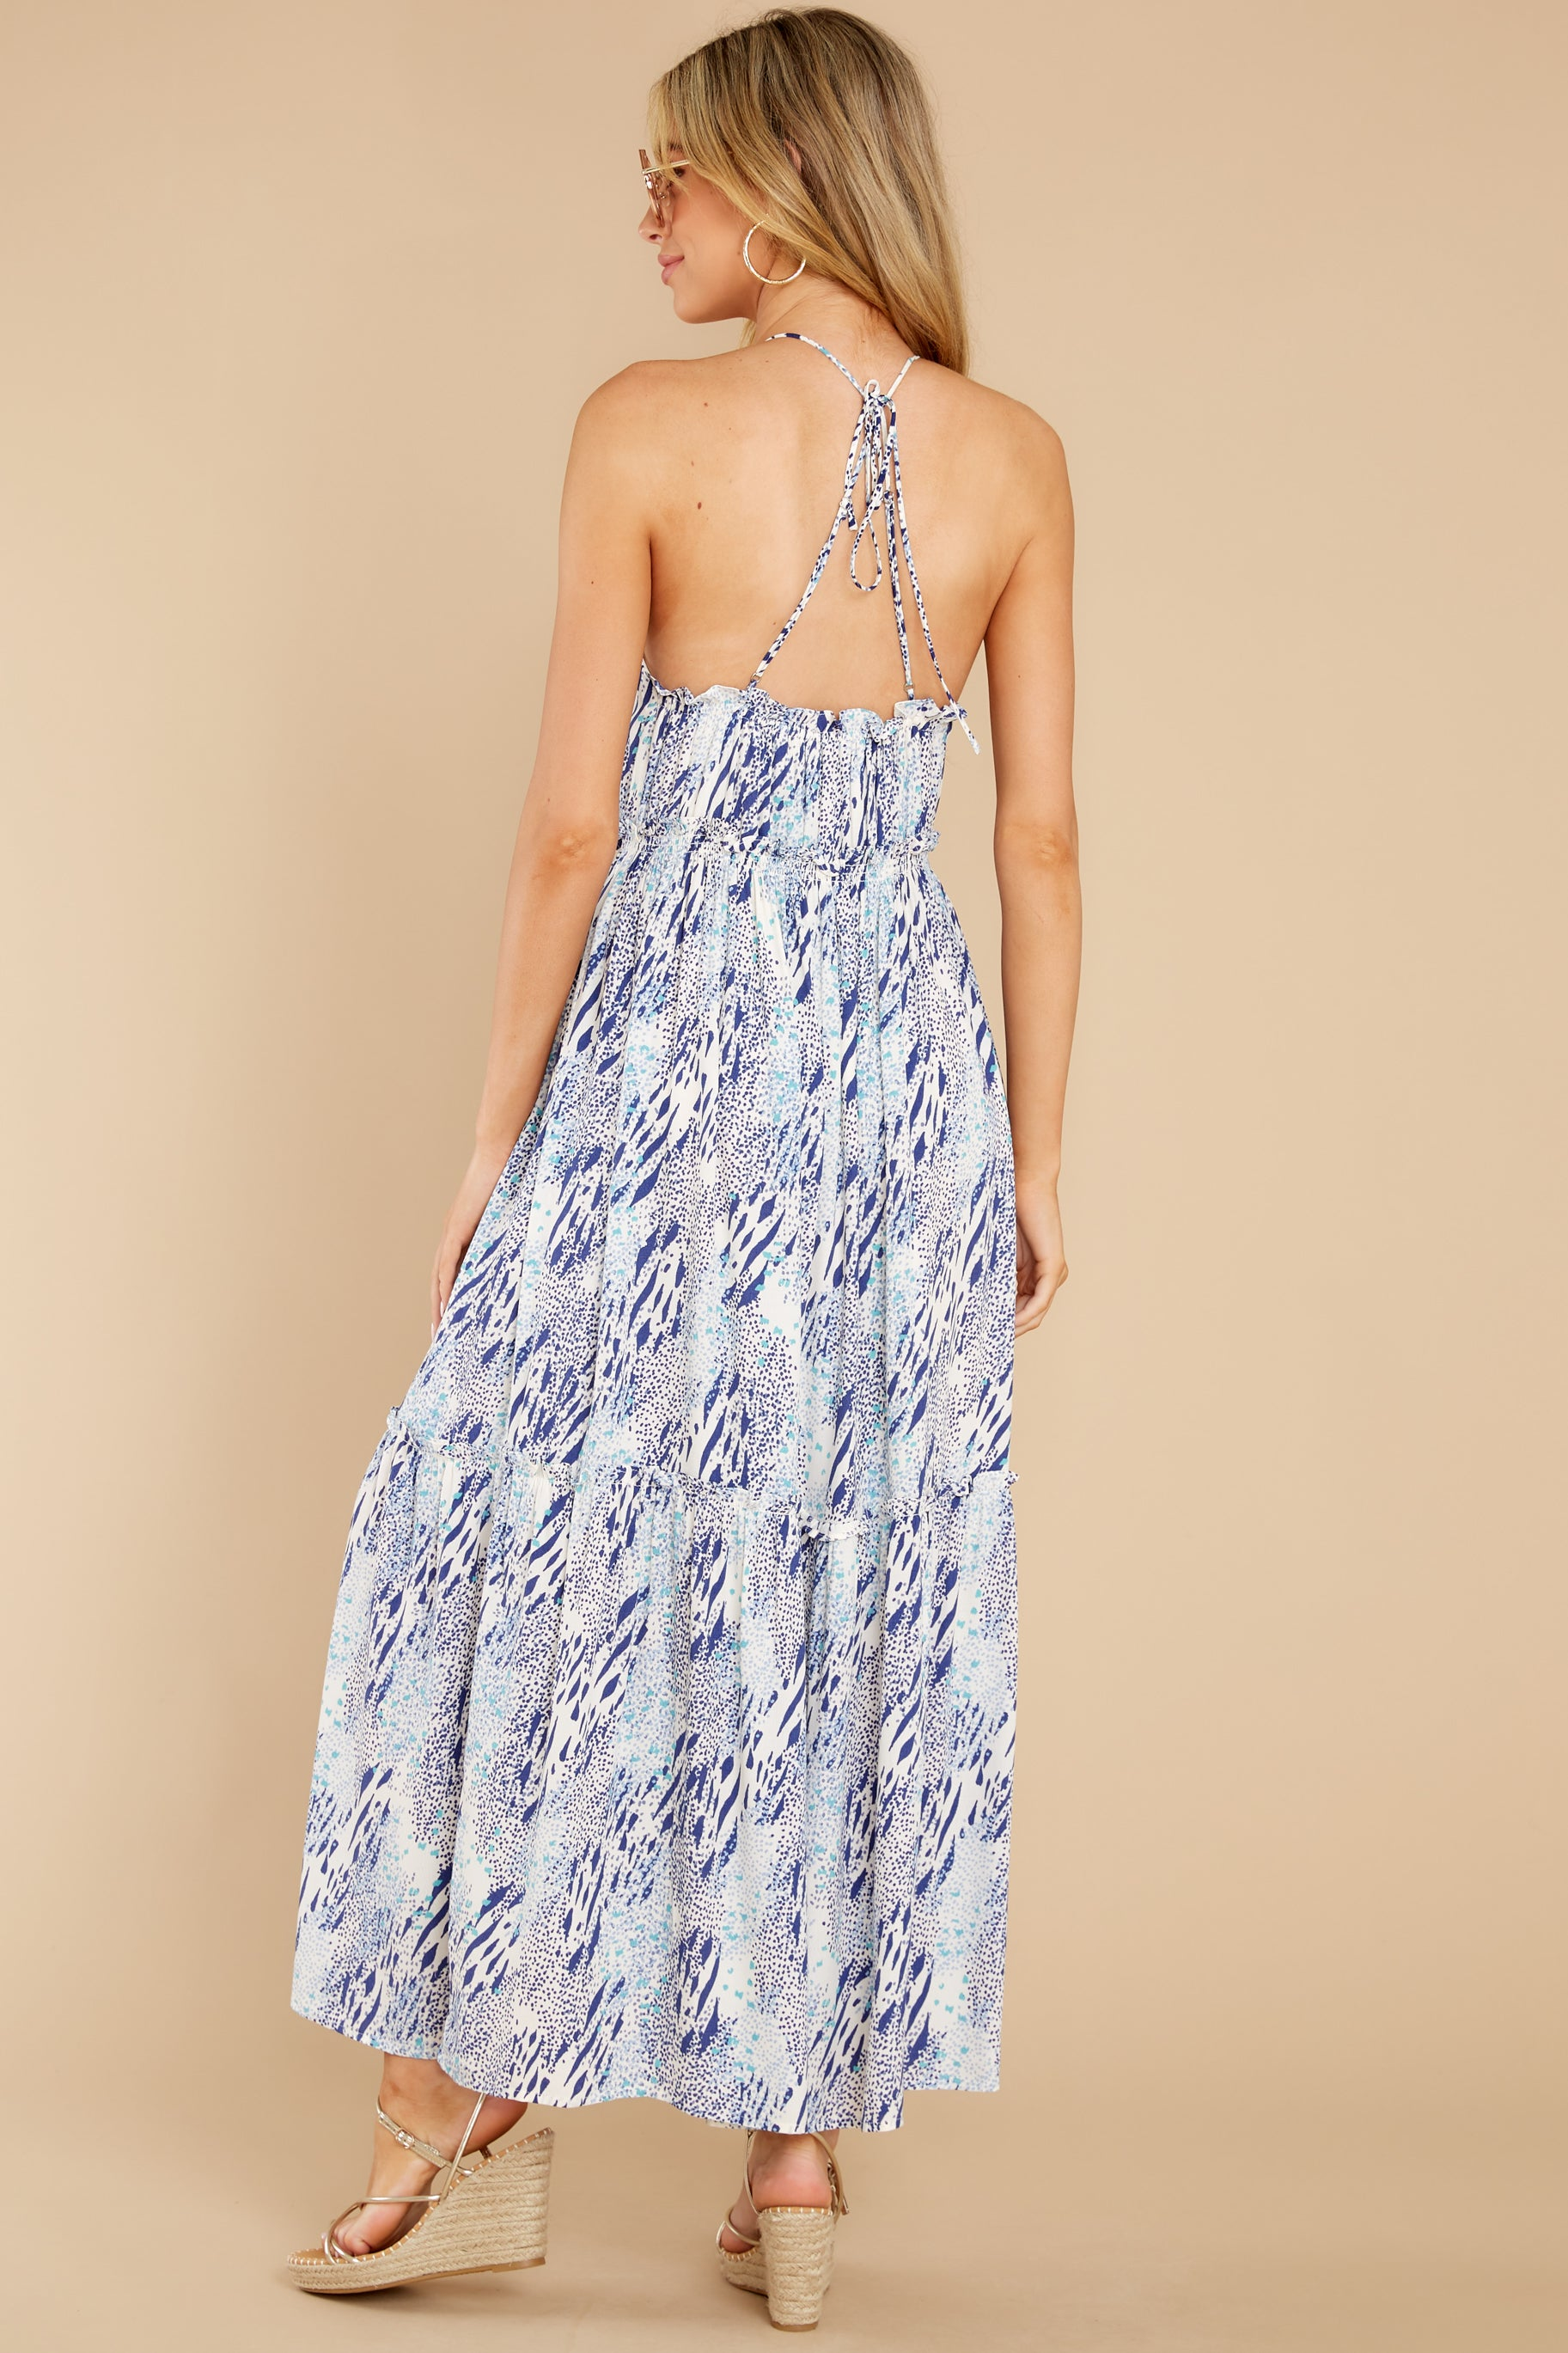 8 Standing Water Blue Multi Print Maxi Dress at reddress.com